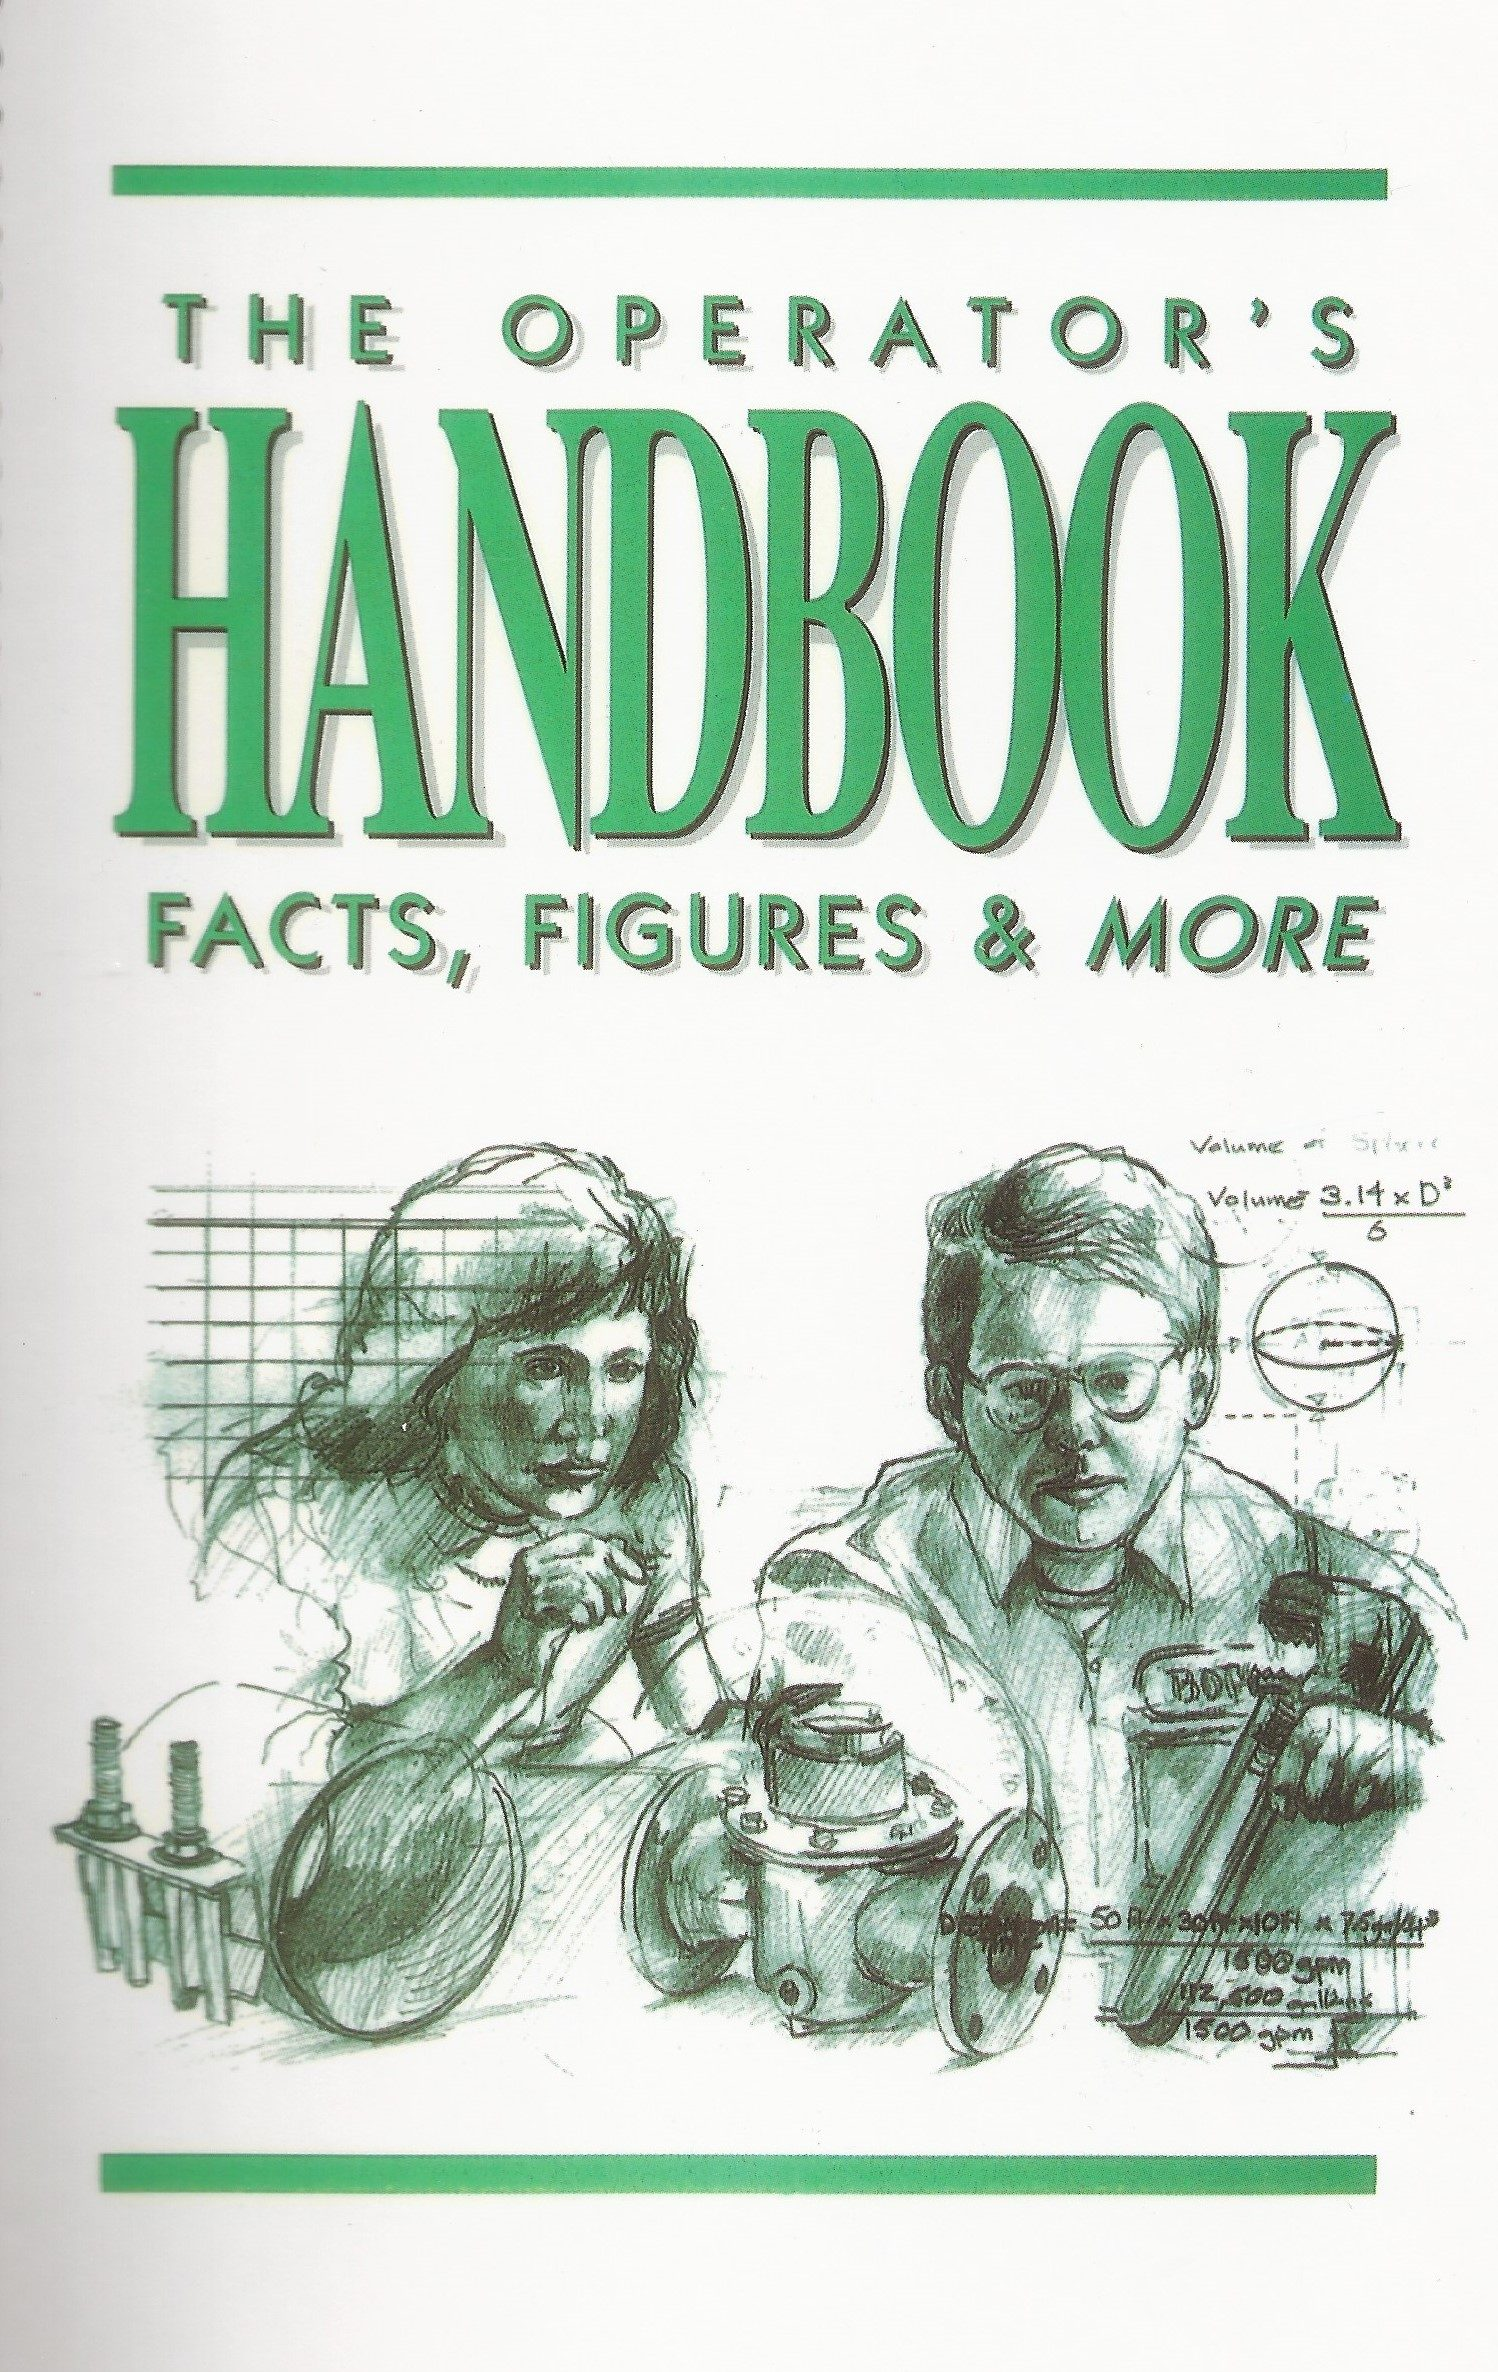 The Operator's Handbook: Facts, Figures, & More